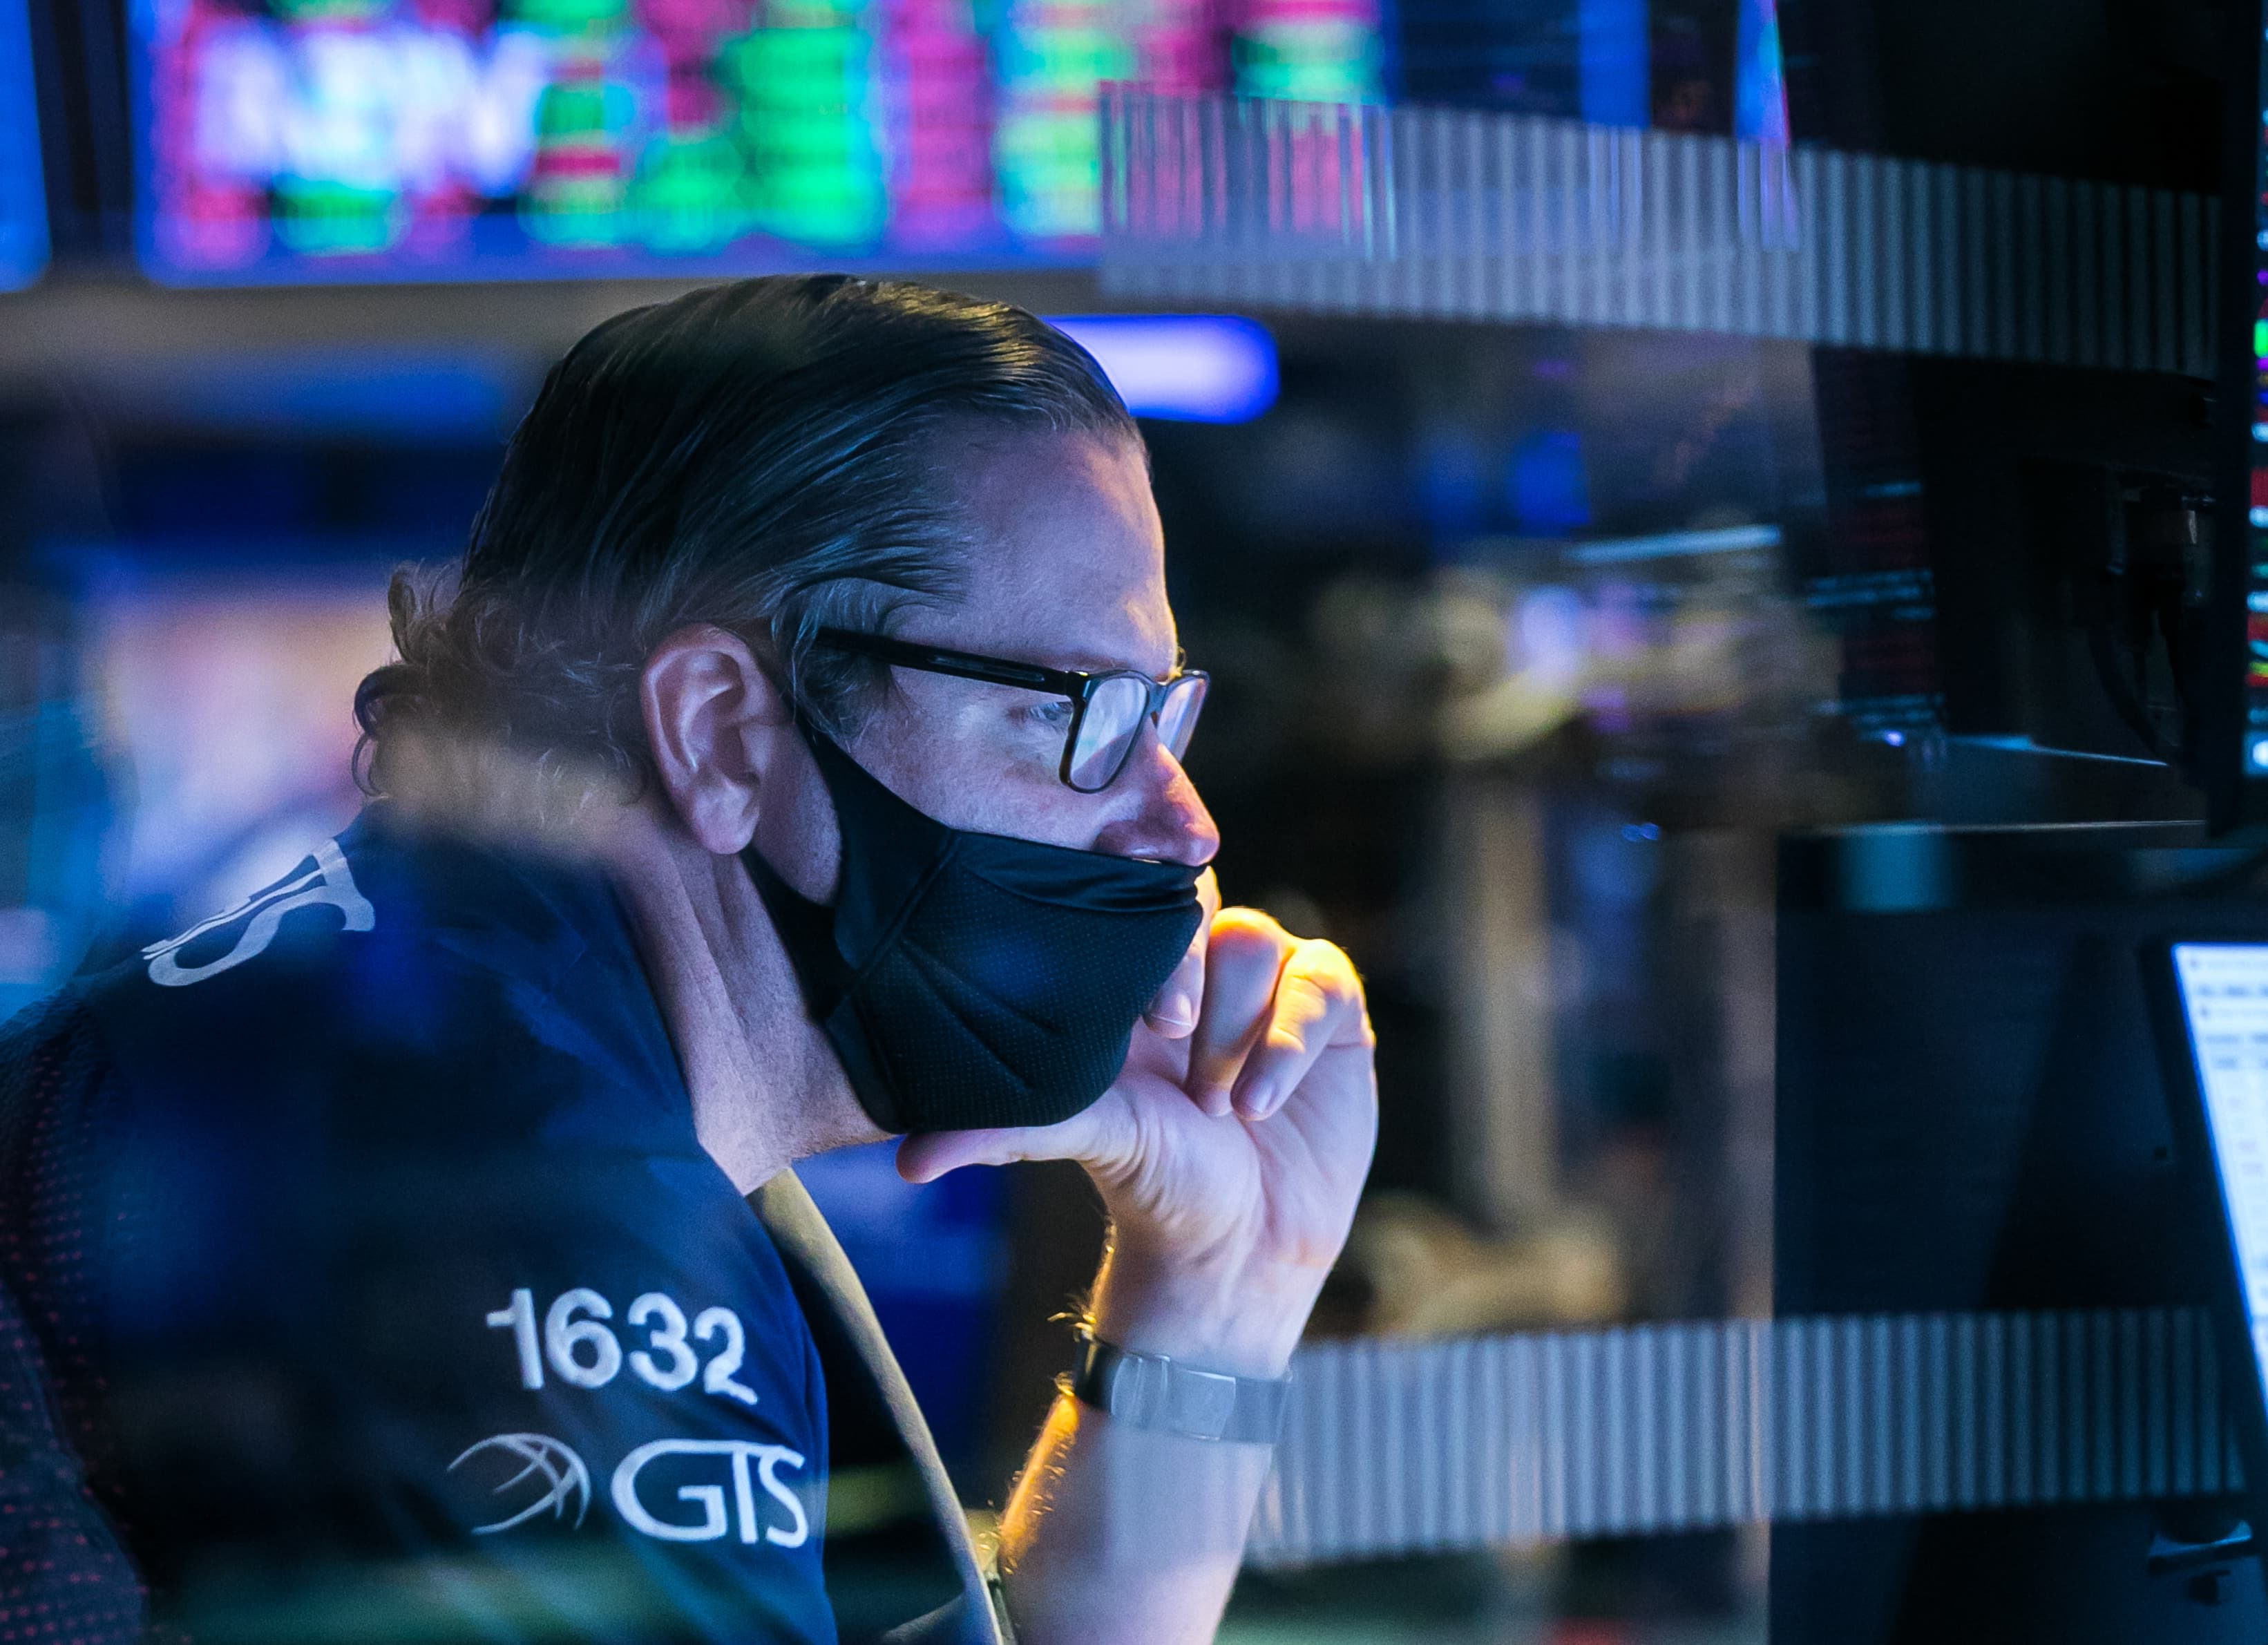 Stocks making the biggest moves after hours: Moderna, Revolve, Fossil & more - CNBC